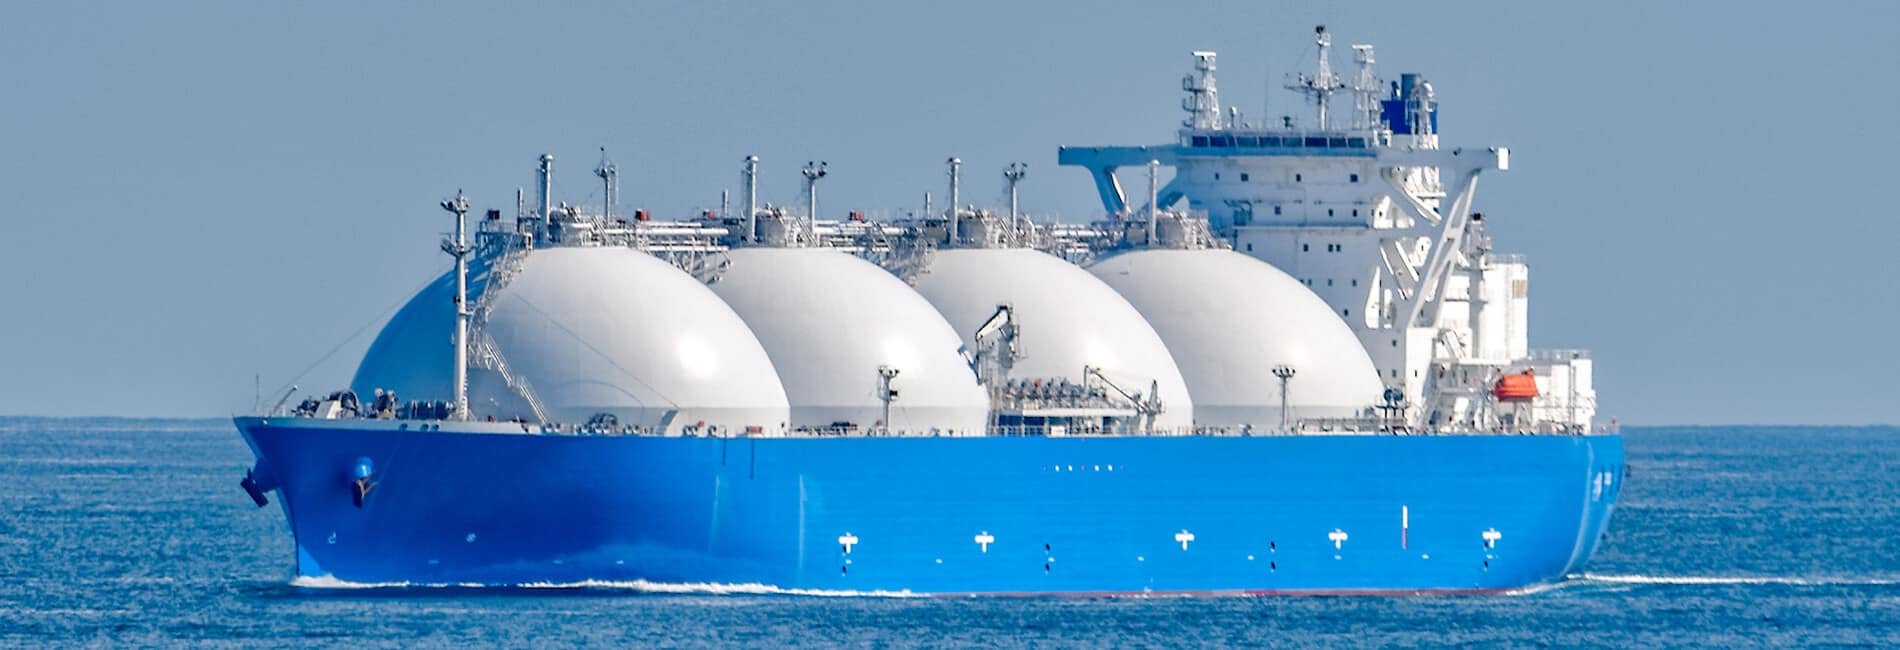 Ship Financing - A perfect example of an well kempt LNG Ship (Liquid Natural Gas) in mid-ocean